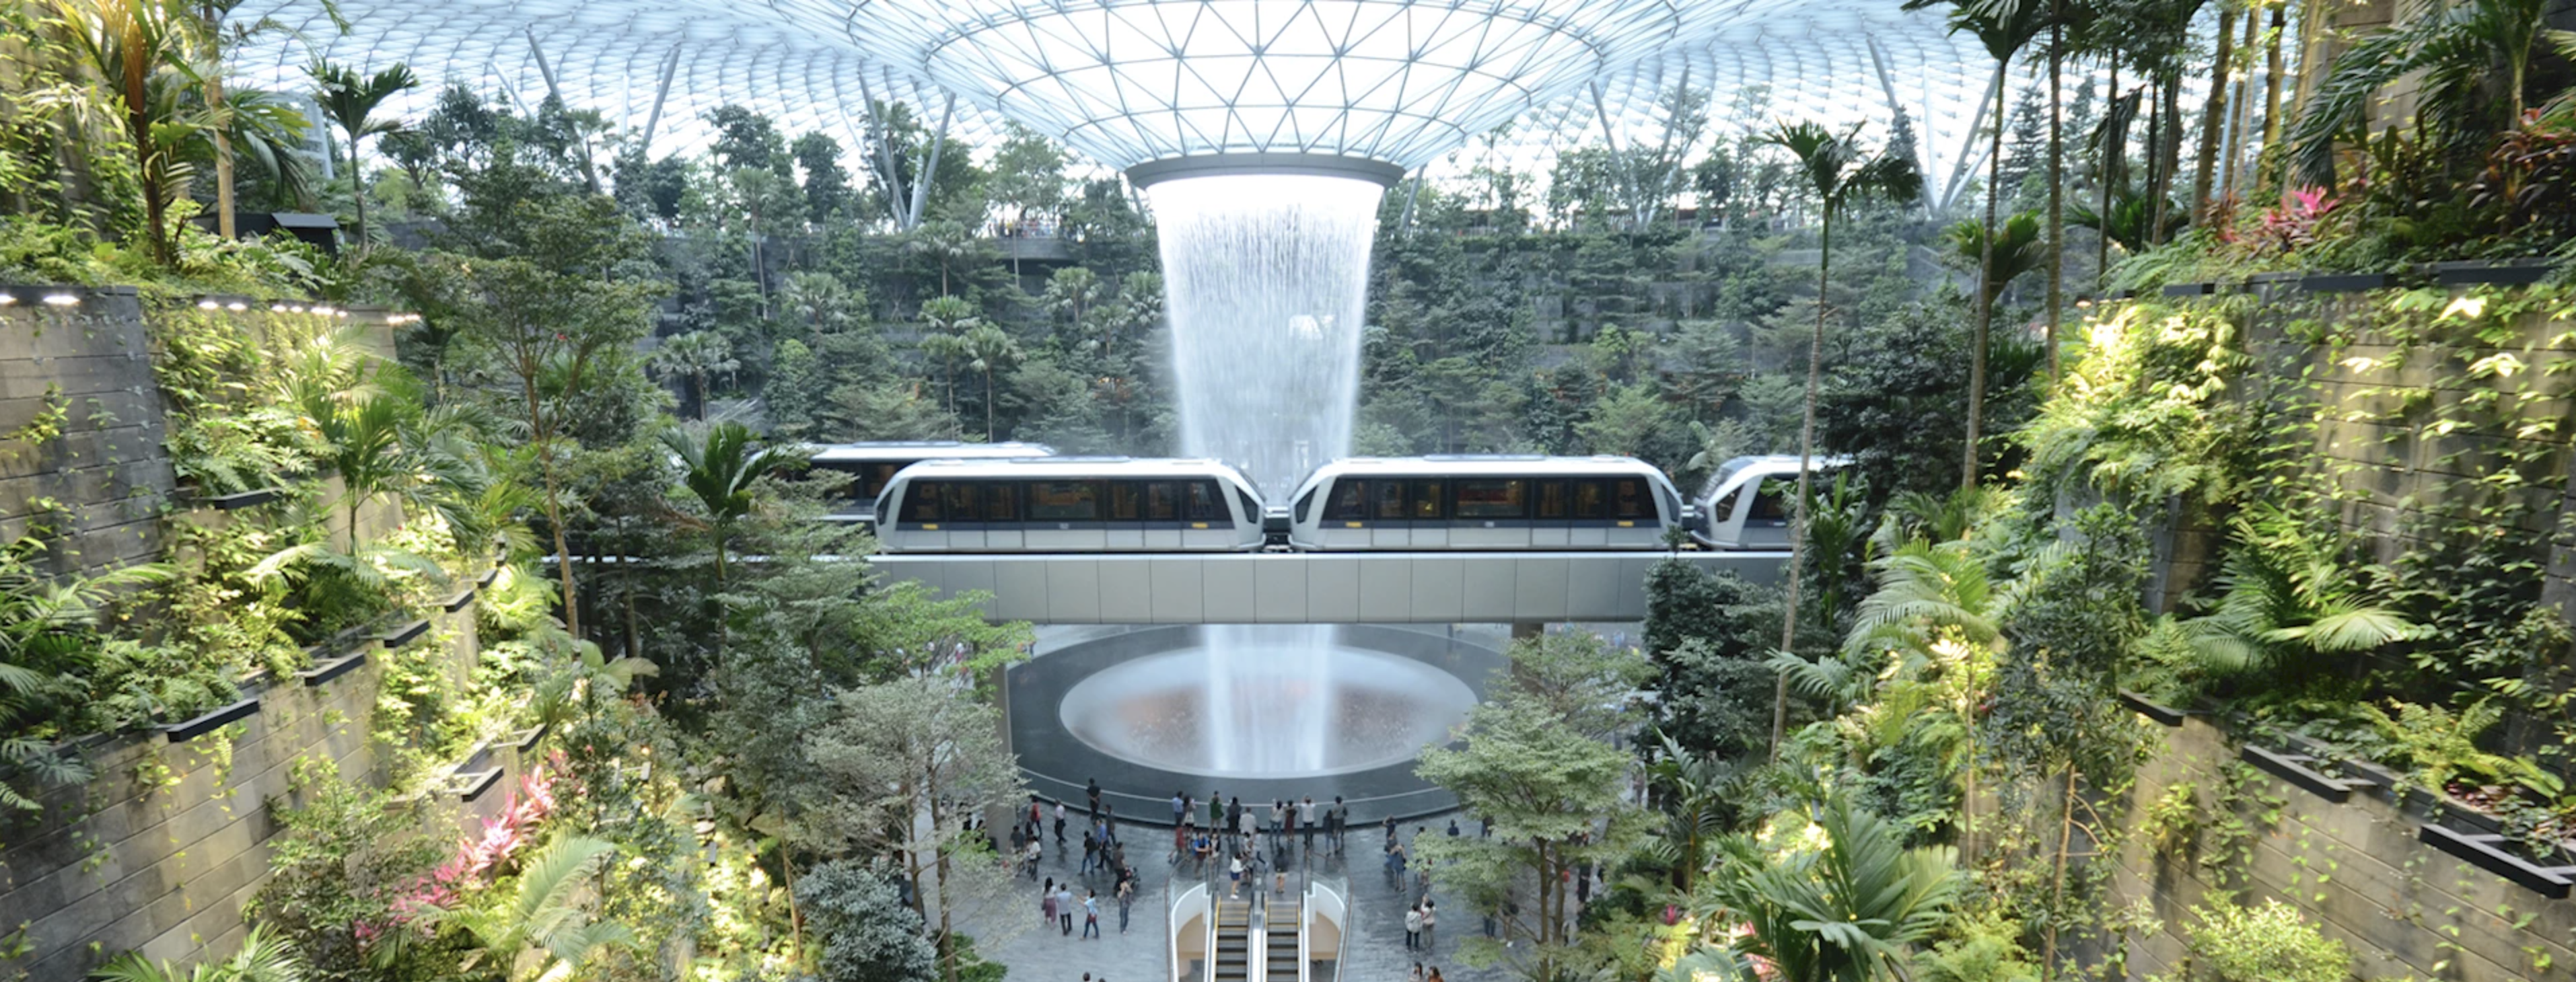 Singapore's Changi Airport to Become Contactless!